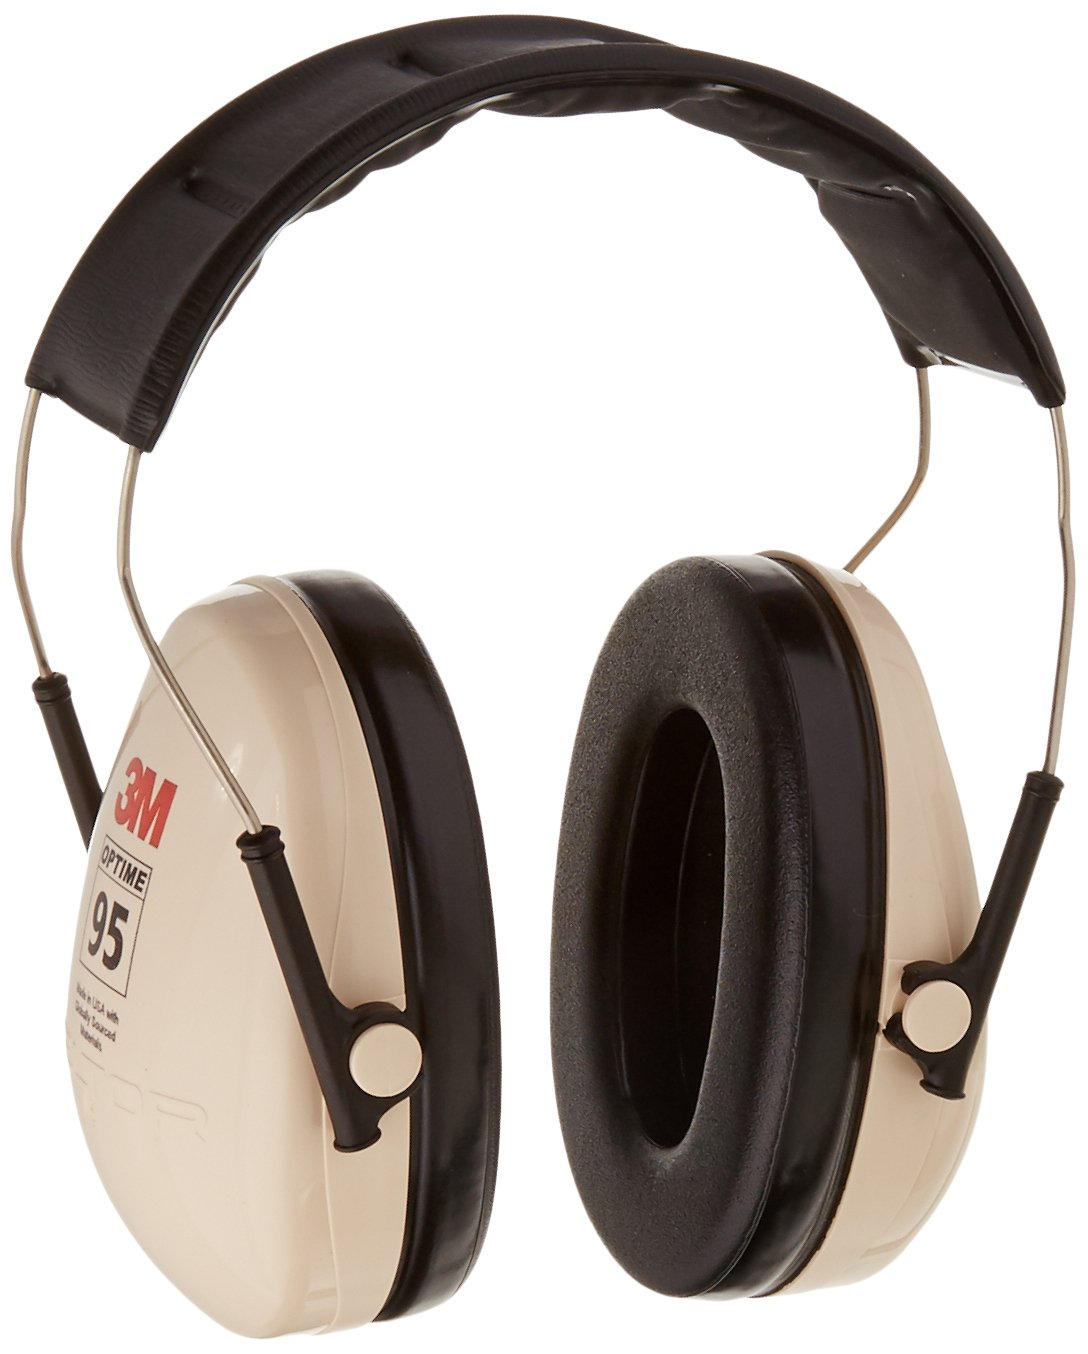 3M Peltor H6AV Optime 95 Over the Head Noise Reduction Earmuff, Hearing Protection, Ear Protectors, NRR 21dB, Ideal for machine shops and power tools by 3M